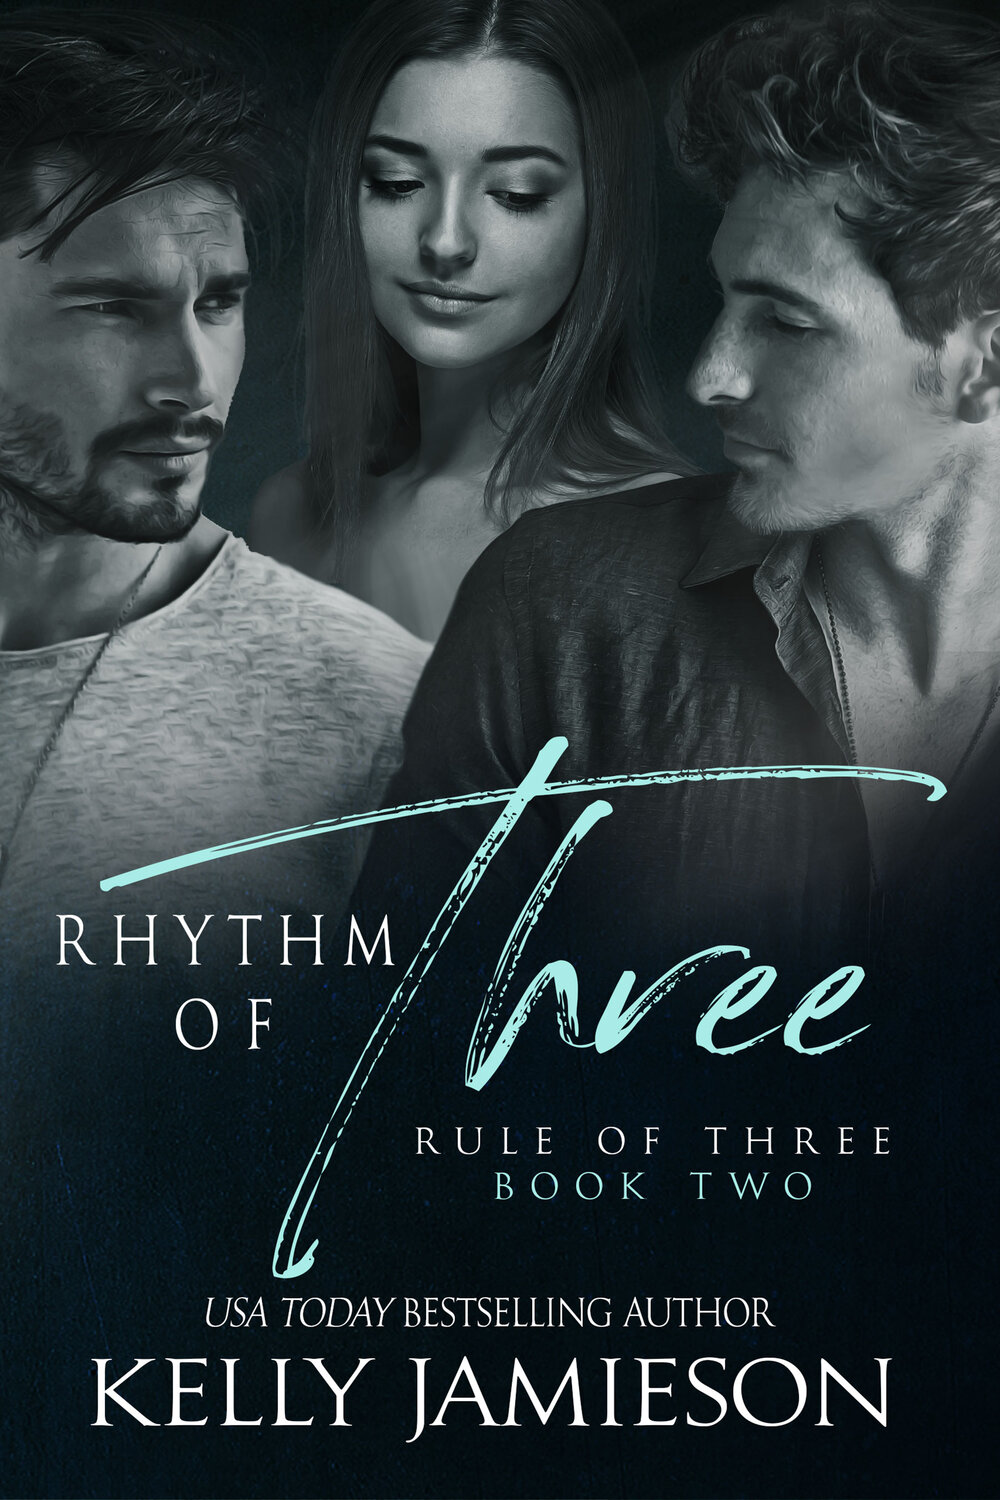 Kelly Jamieson Rhythm of Three Rule of Three 2.jpg